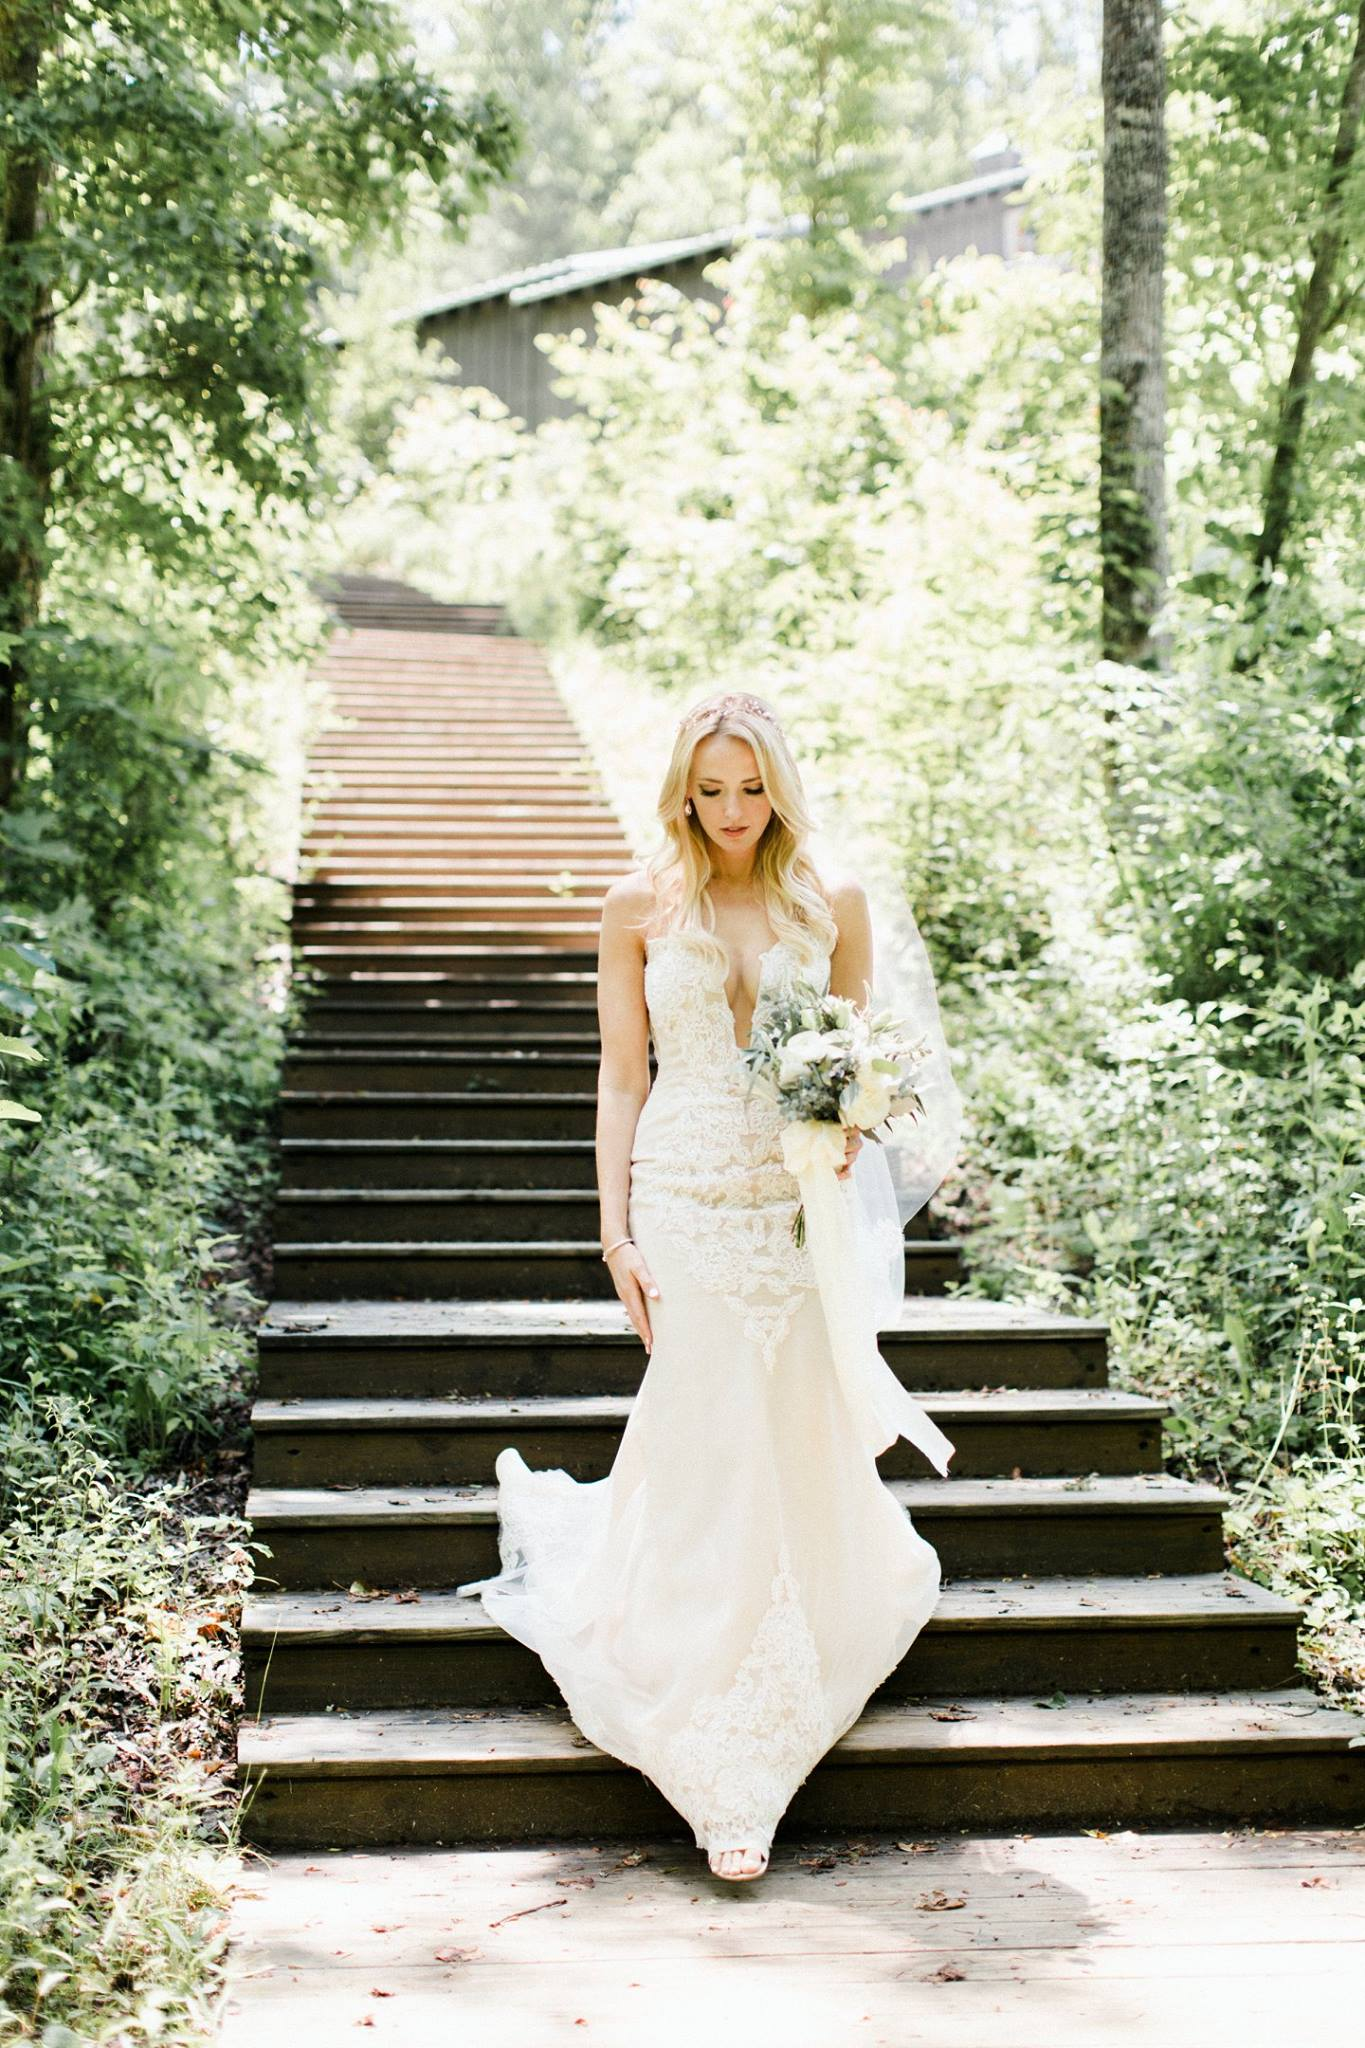 kari walking down the staircase in her wedding dress to meet rob